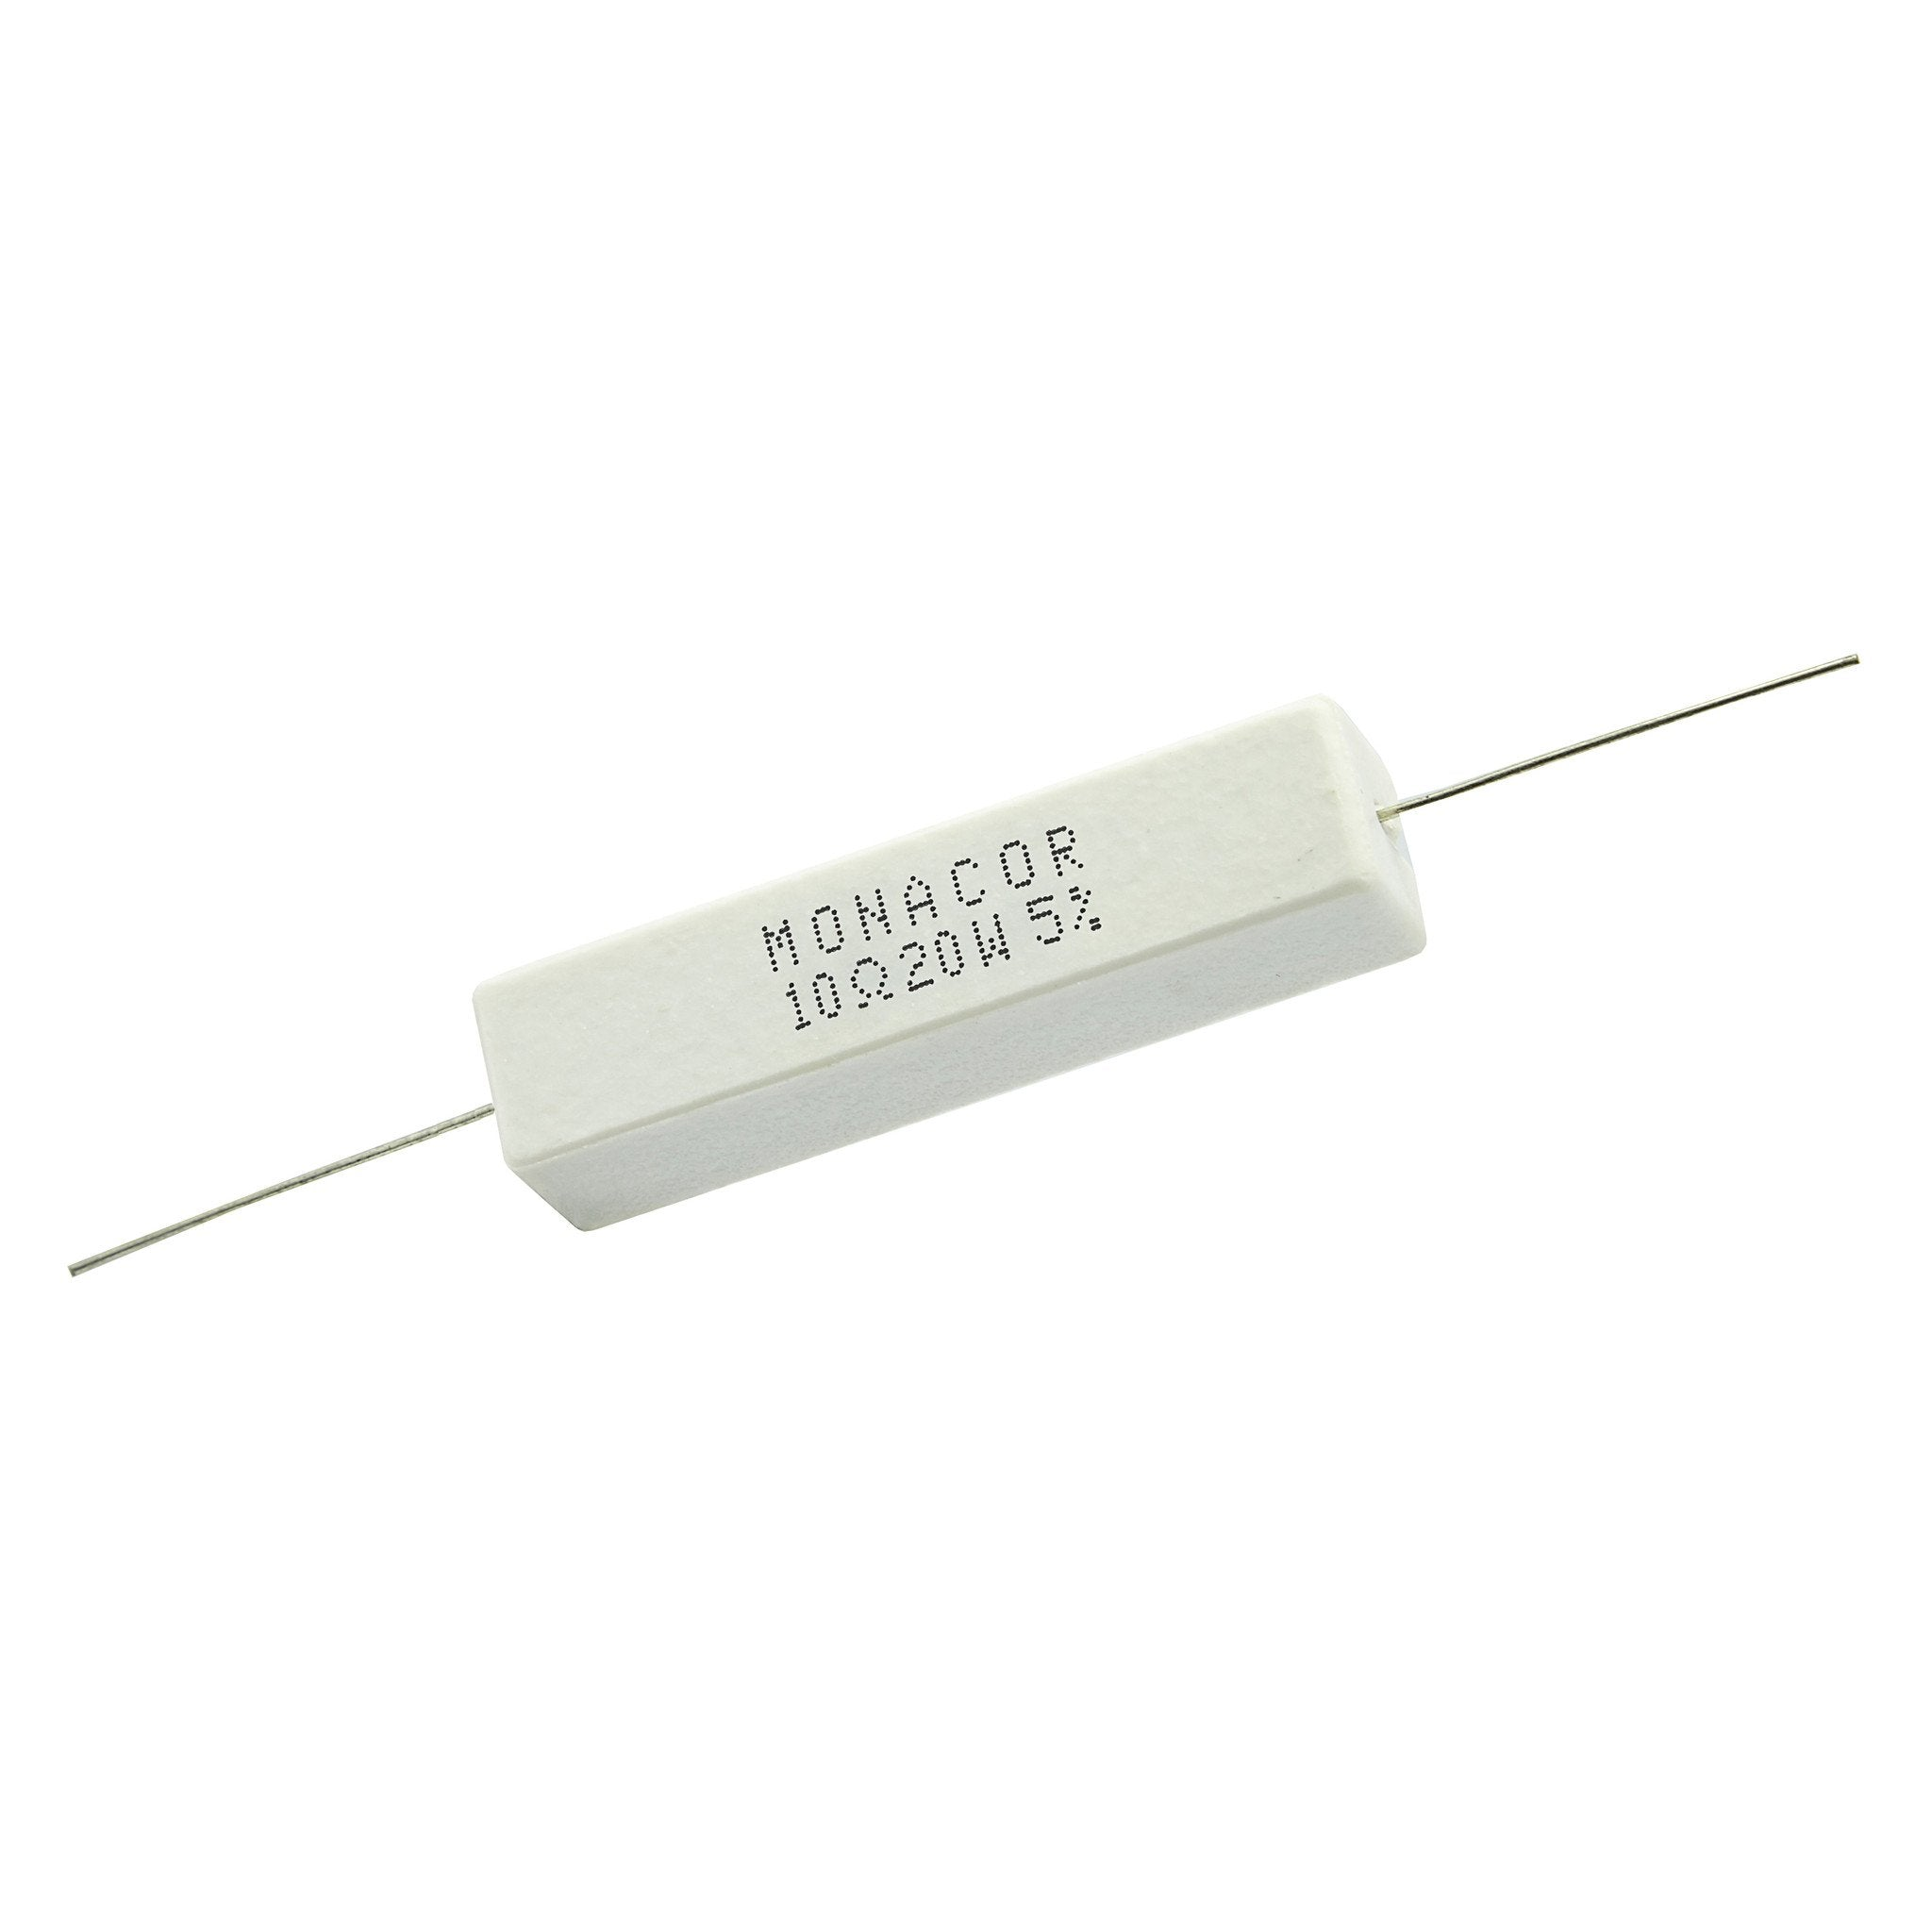 10 Ohm 20 Watt 5% Ceramic Wirewound Resistor - Willys-Hifi Ltd